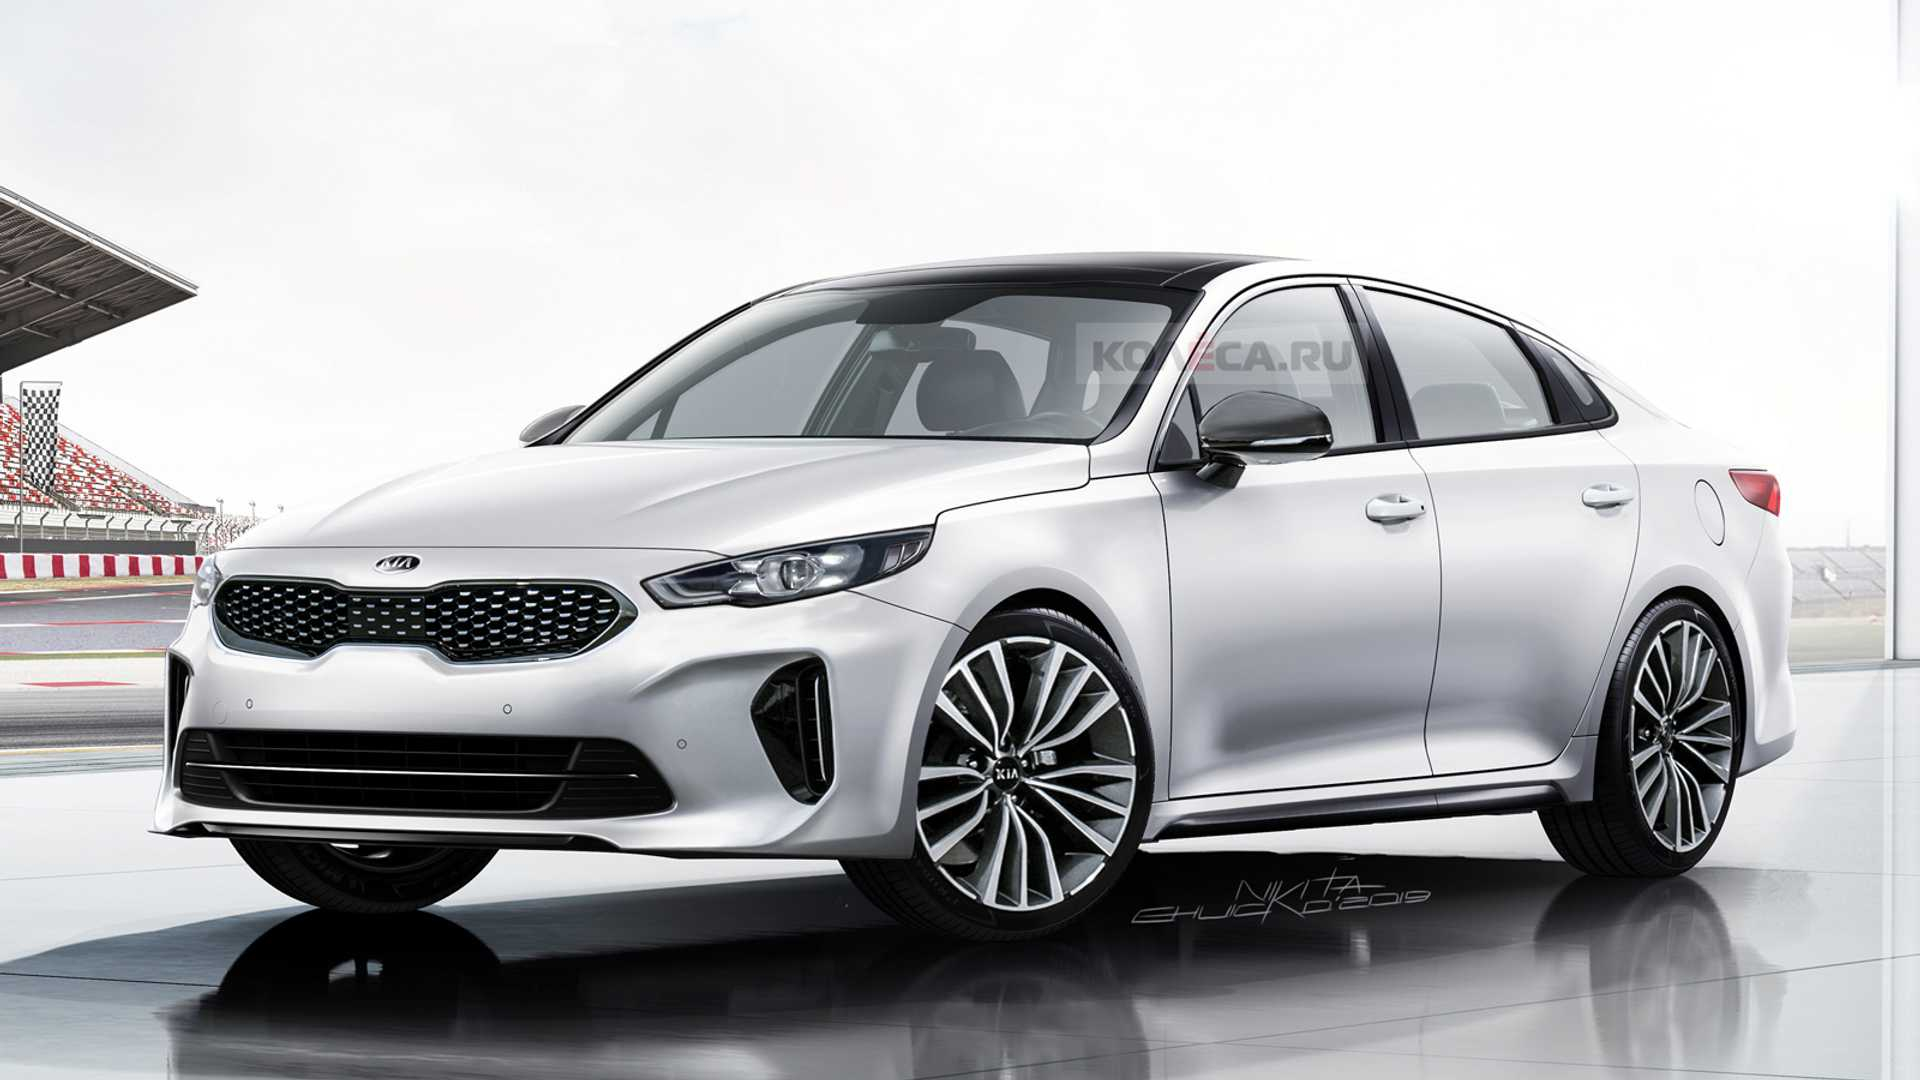 Kia Optima Gets Stylish Look In Next-Gen Rendering - 2022 Kia Optima Uk Automatic Transmission, Changes